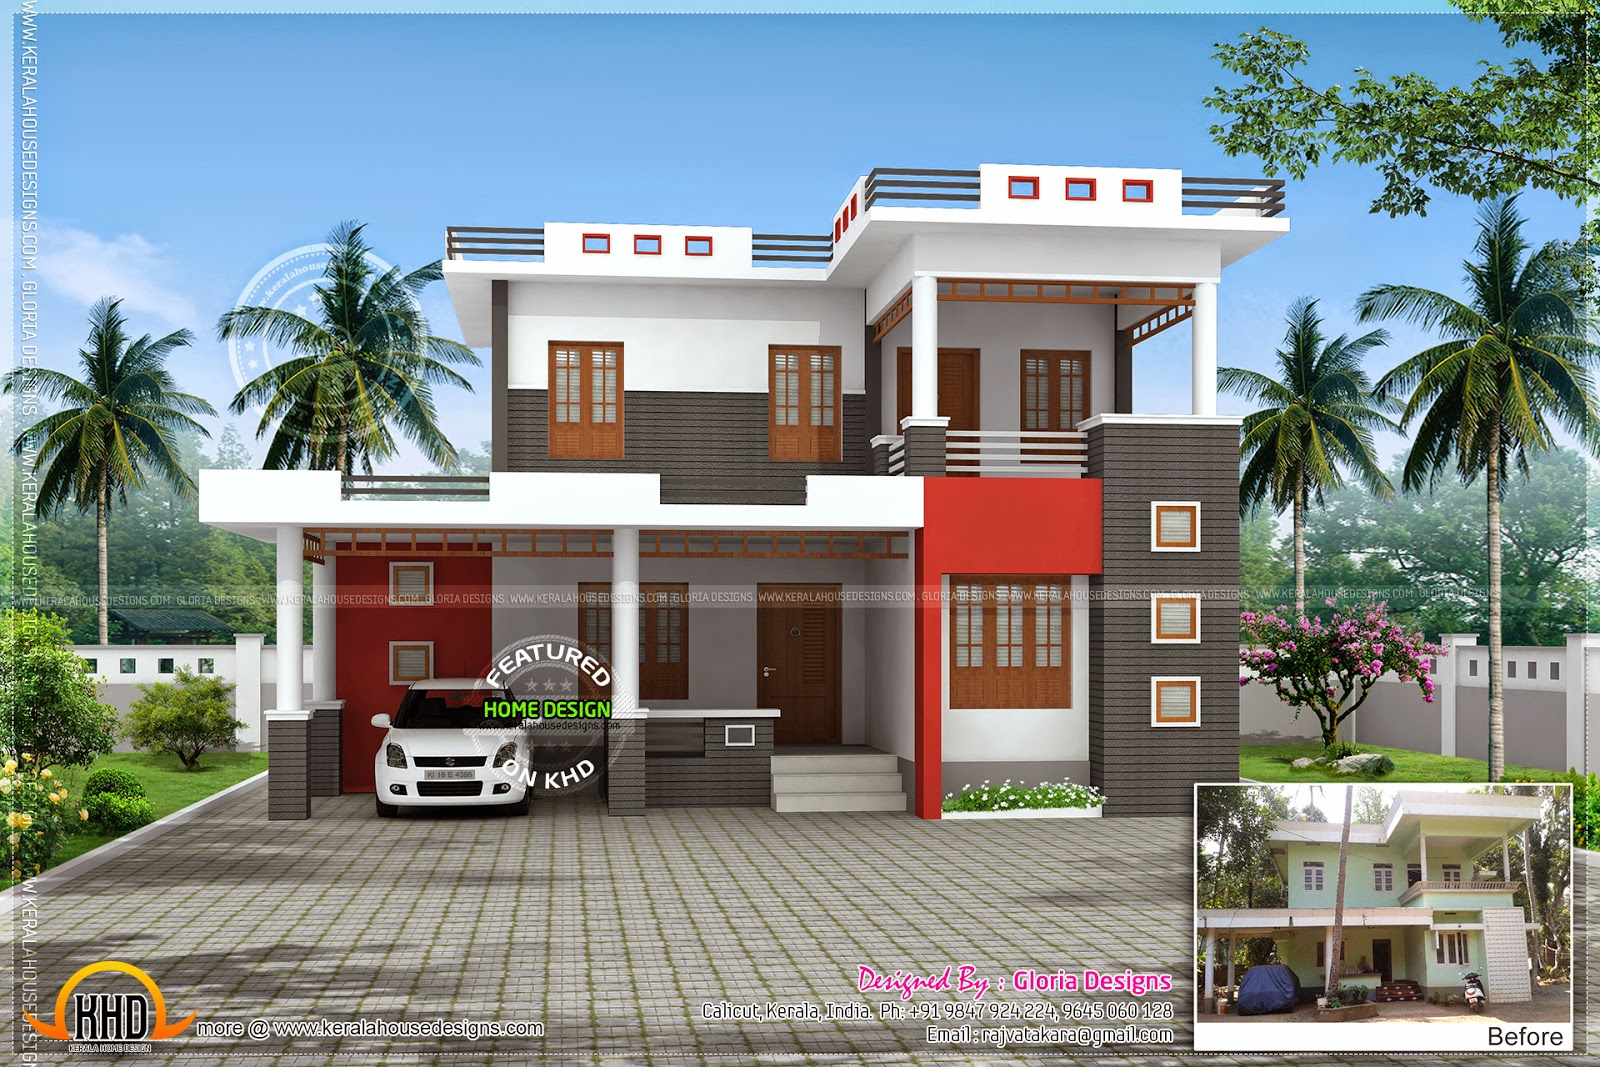 Renovation 3d model for an old house kerala home design for Single floor house designs tamilnadu